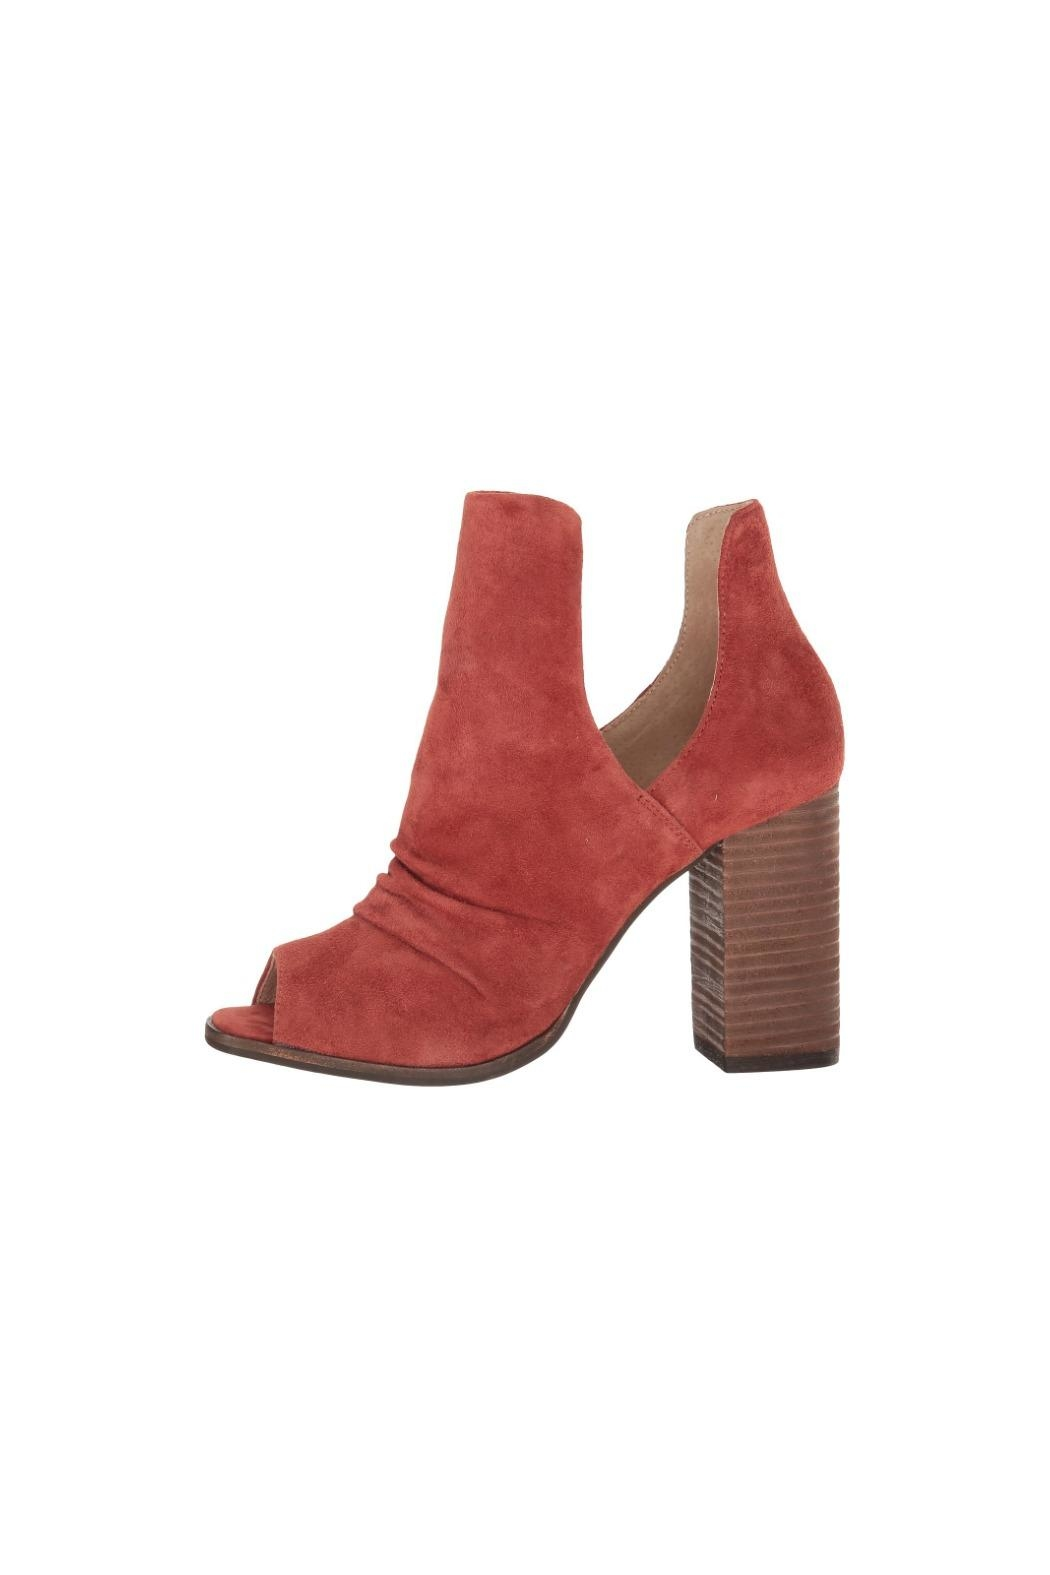 Kristin Cavallari for Chinese Laundry Lash Peep Toe Bootie - Front Cropped Image